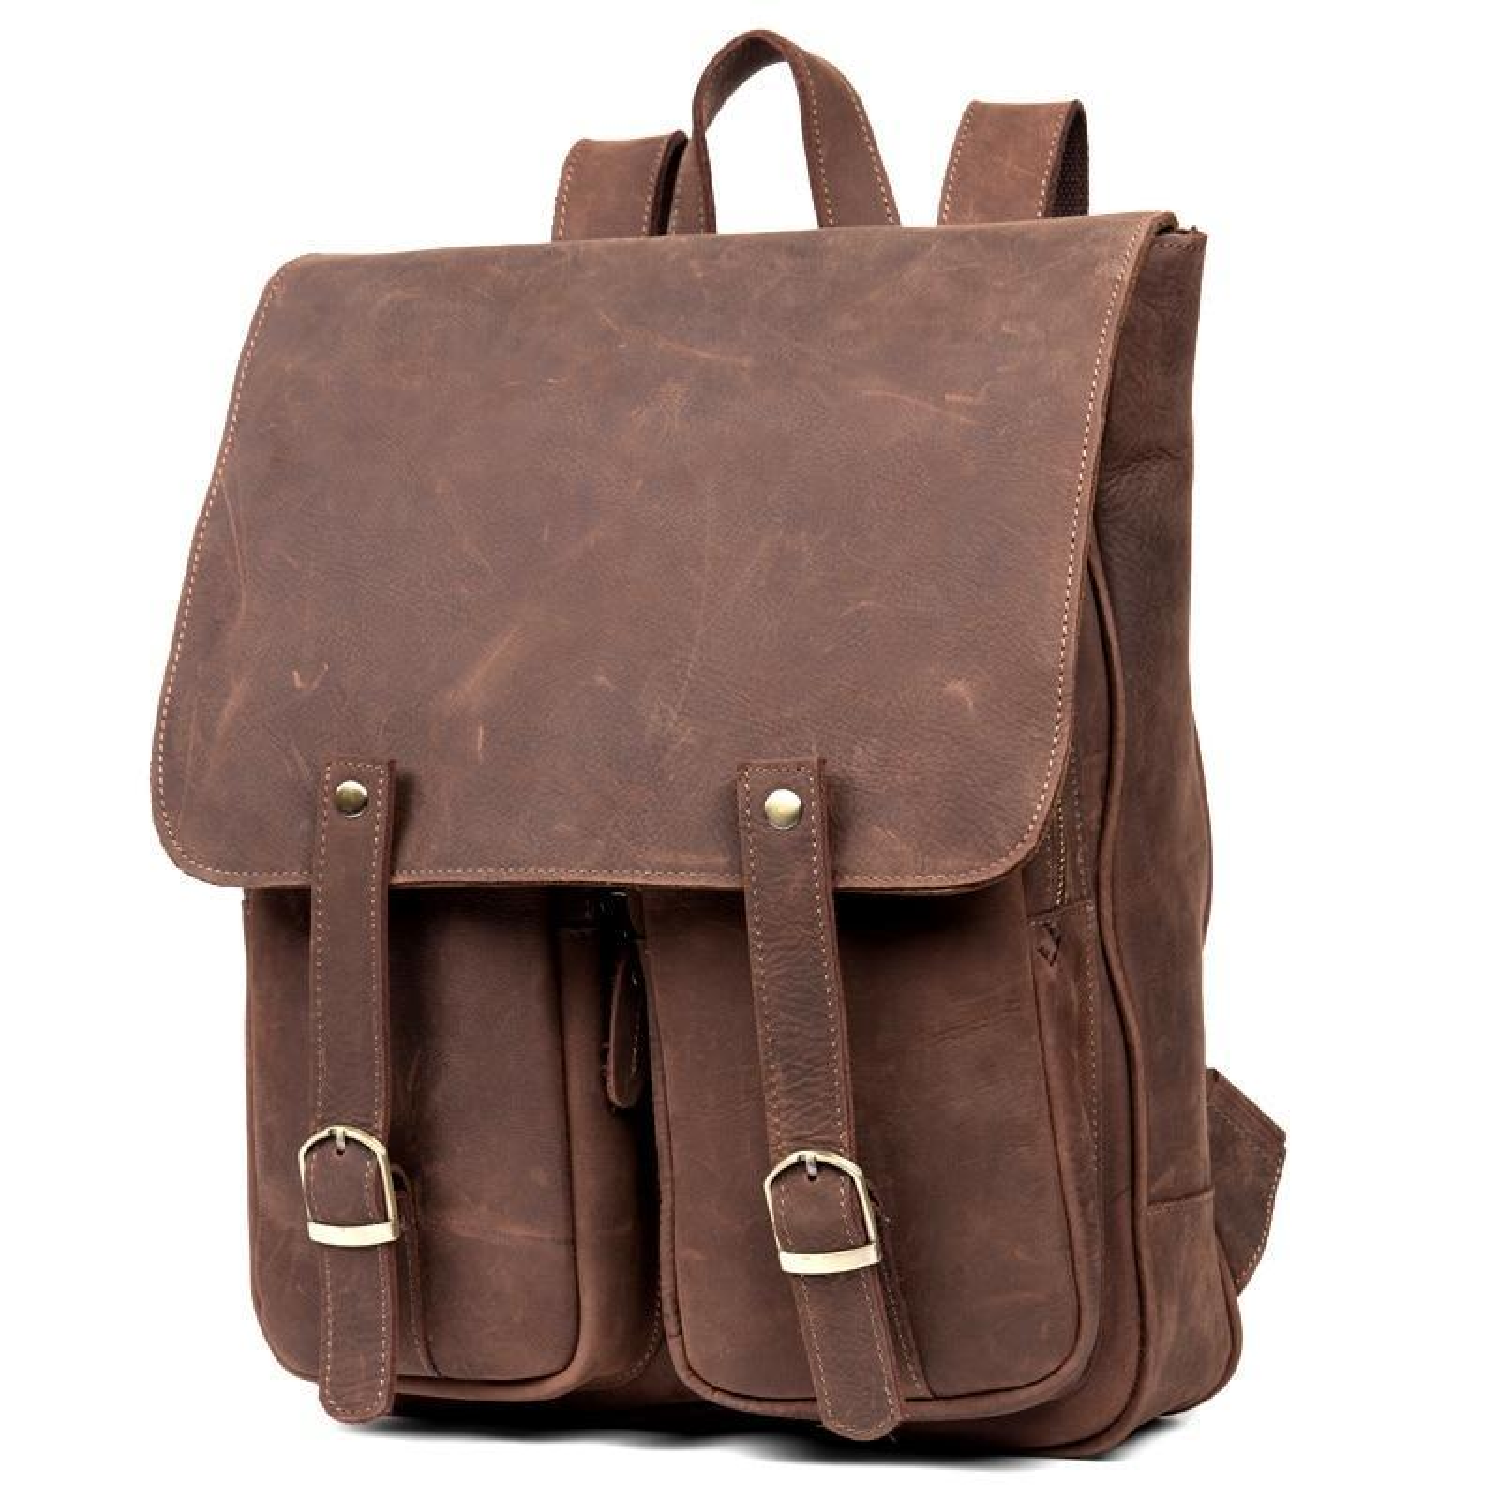 14 Laptop Travel Backpack Bags Cow Leather Men Women Business Solid Black Brown School Book Bag Backpacks Students Big Bag Luggage & Bags